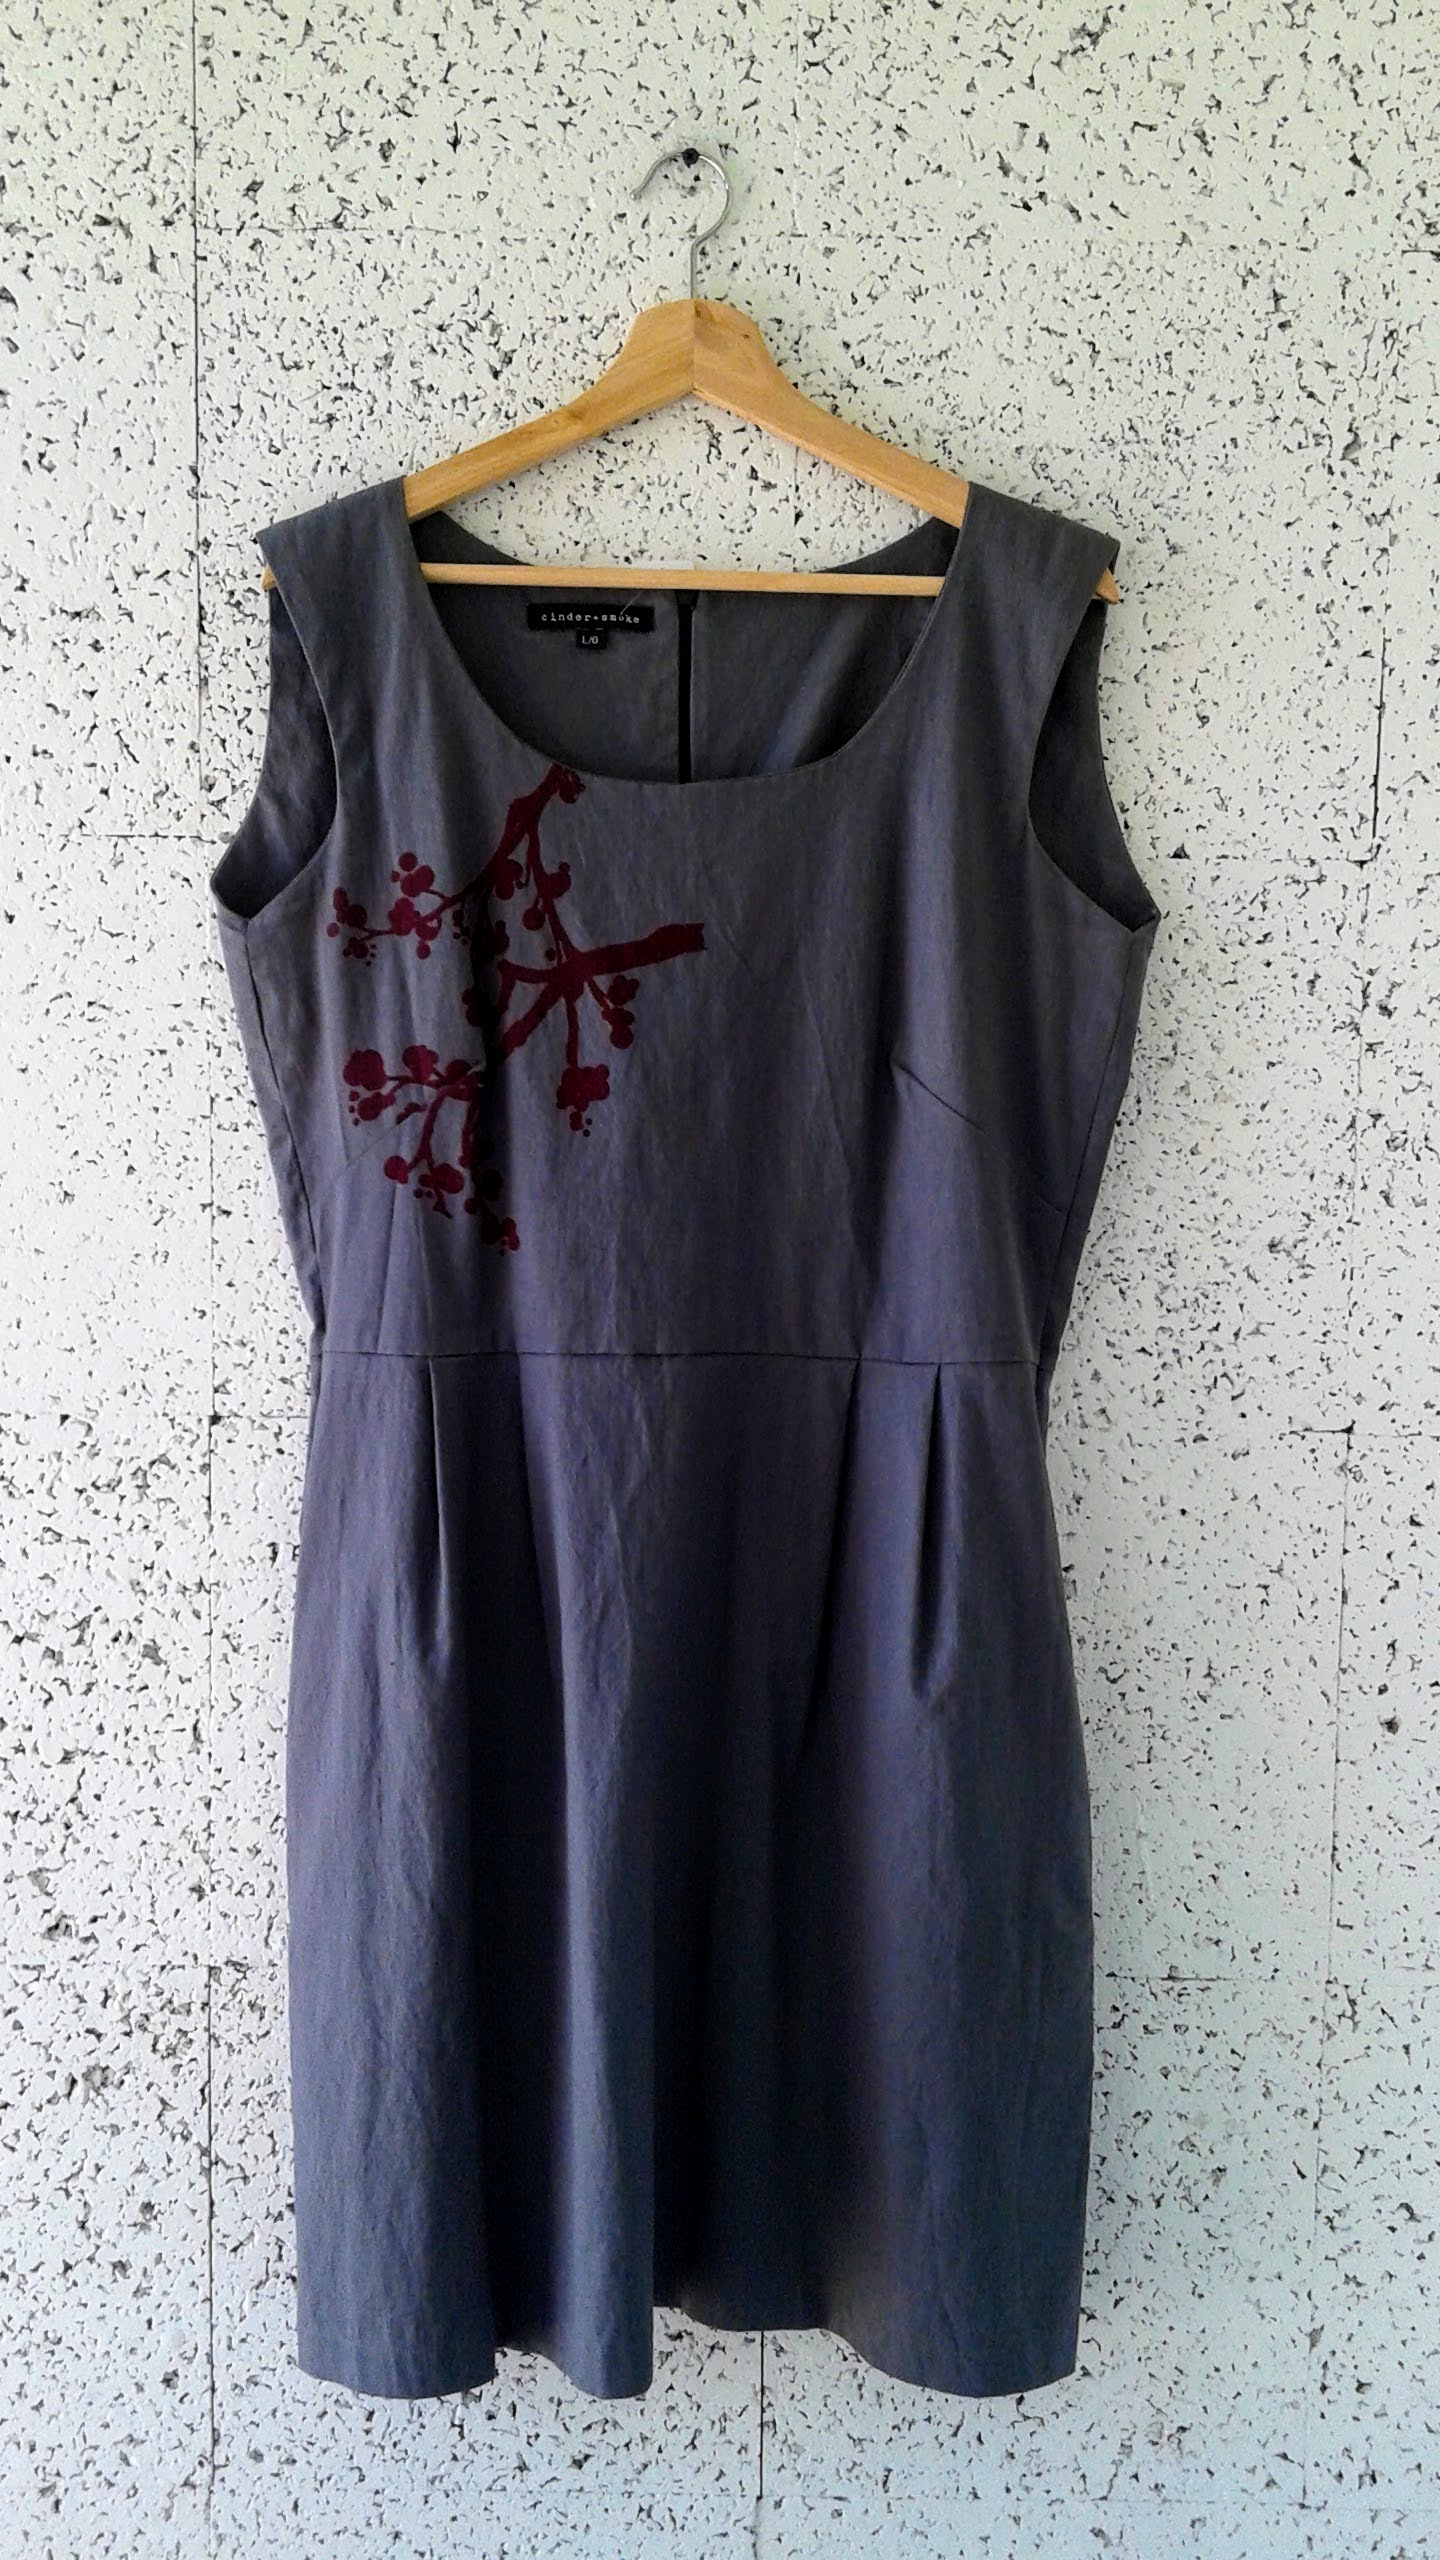 Cinder+Smoke dress; Size L, $46